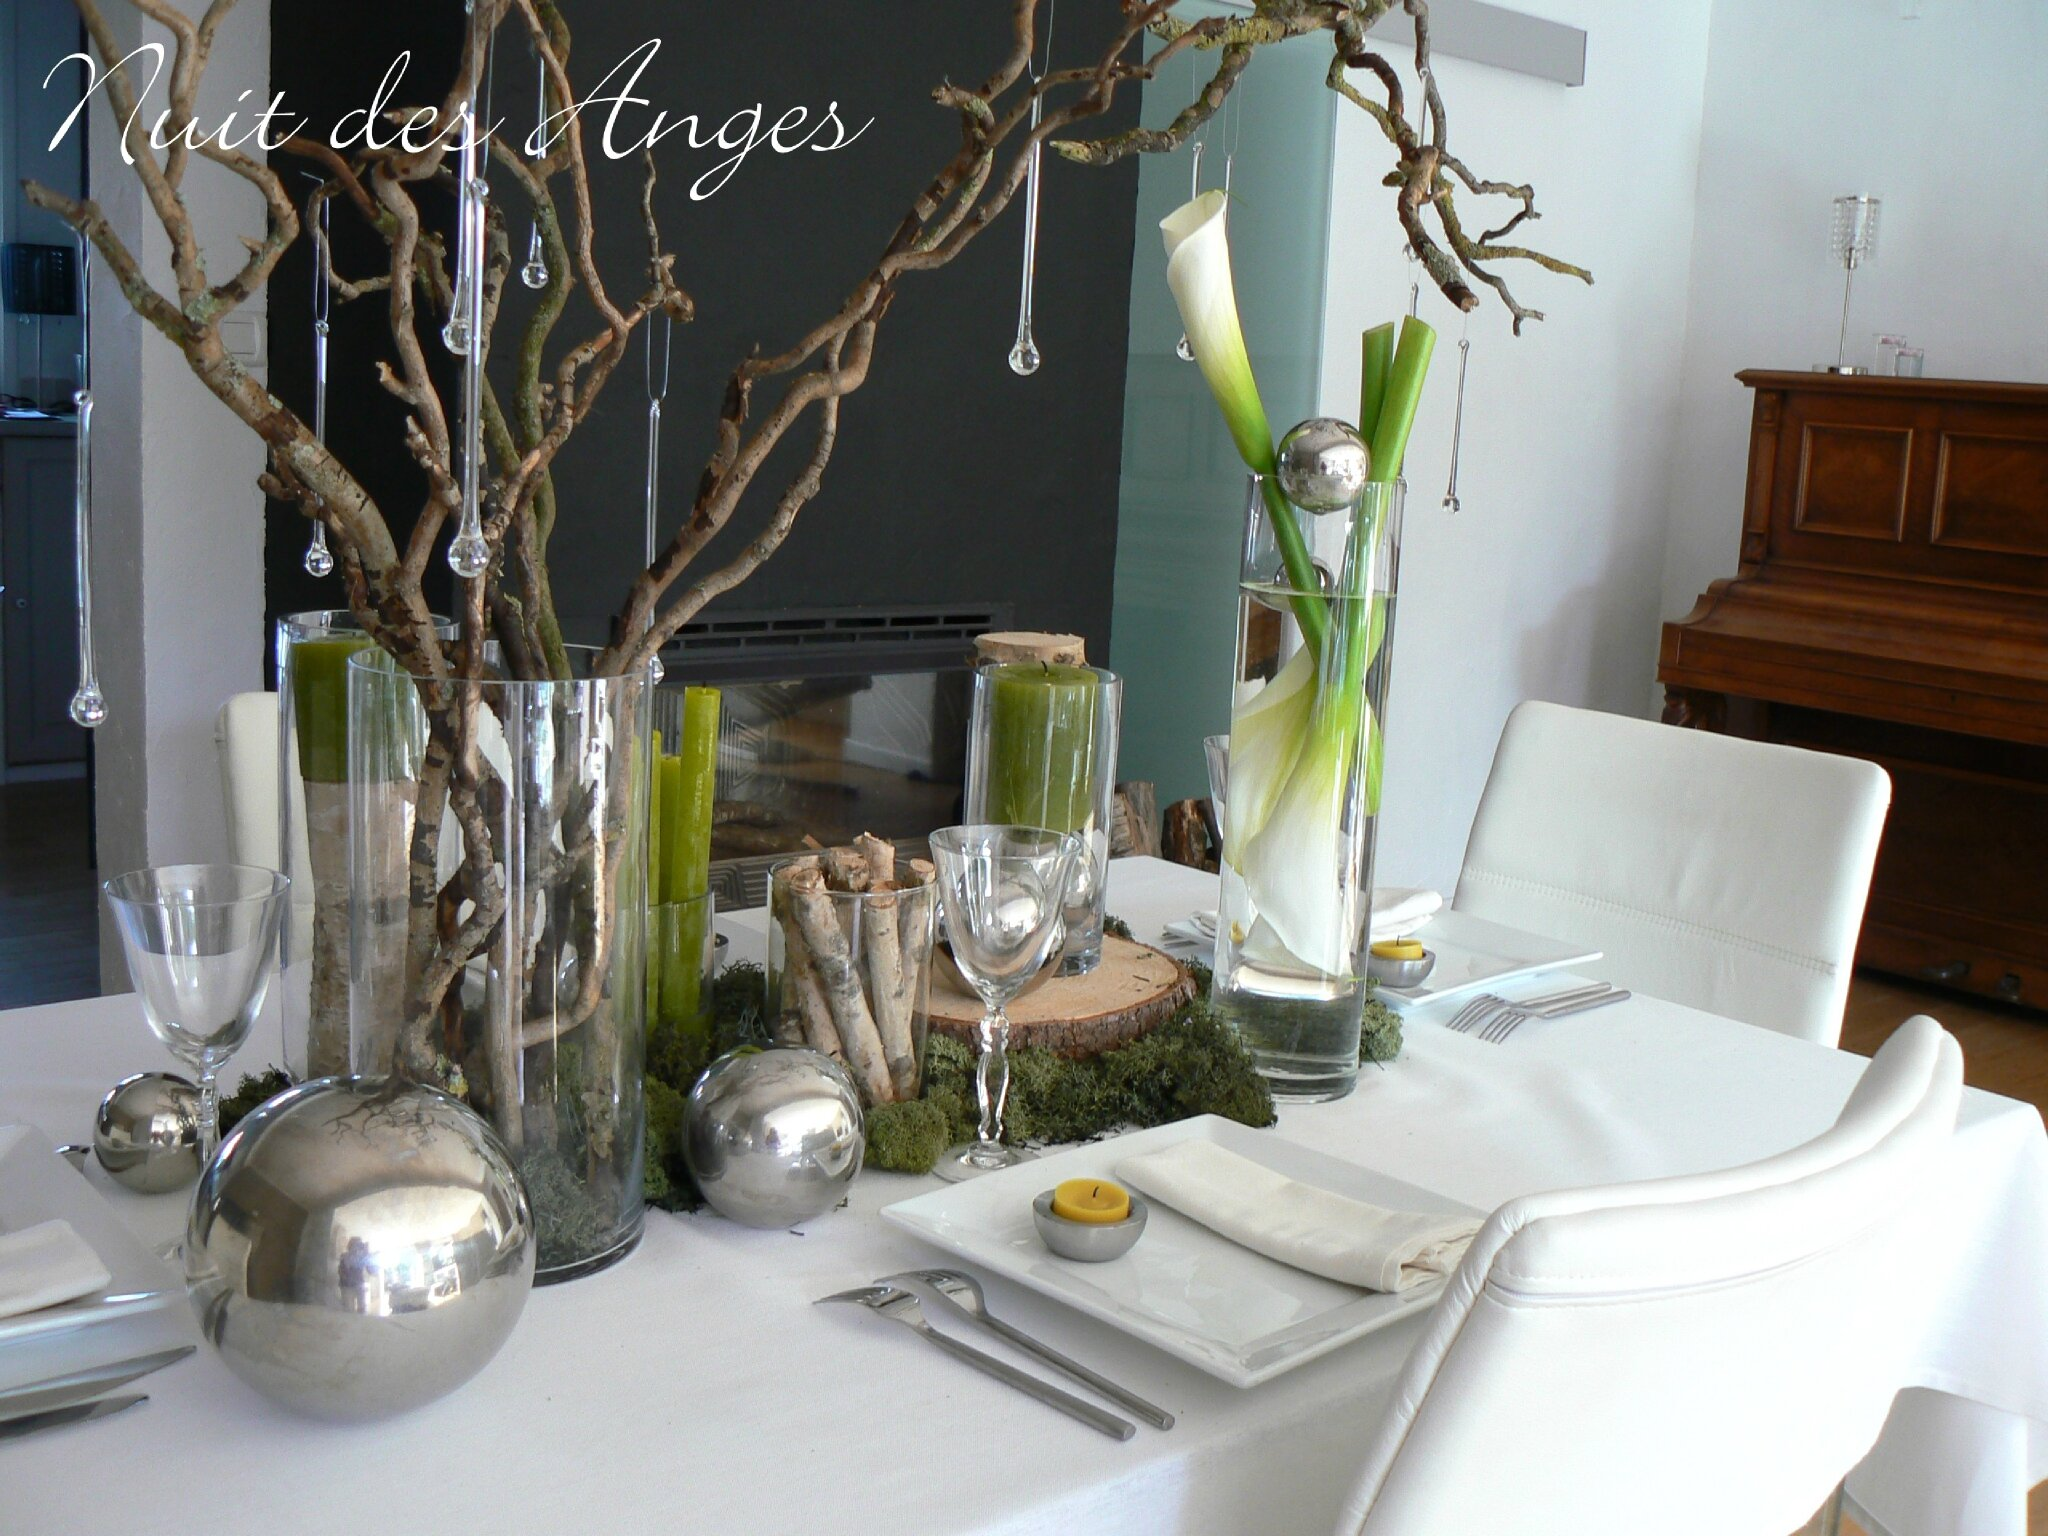 Nuit des anges d coratrice de mariage d coration de table jardin nature 004 - Decoration de table nature ...